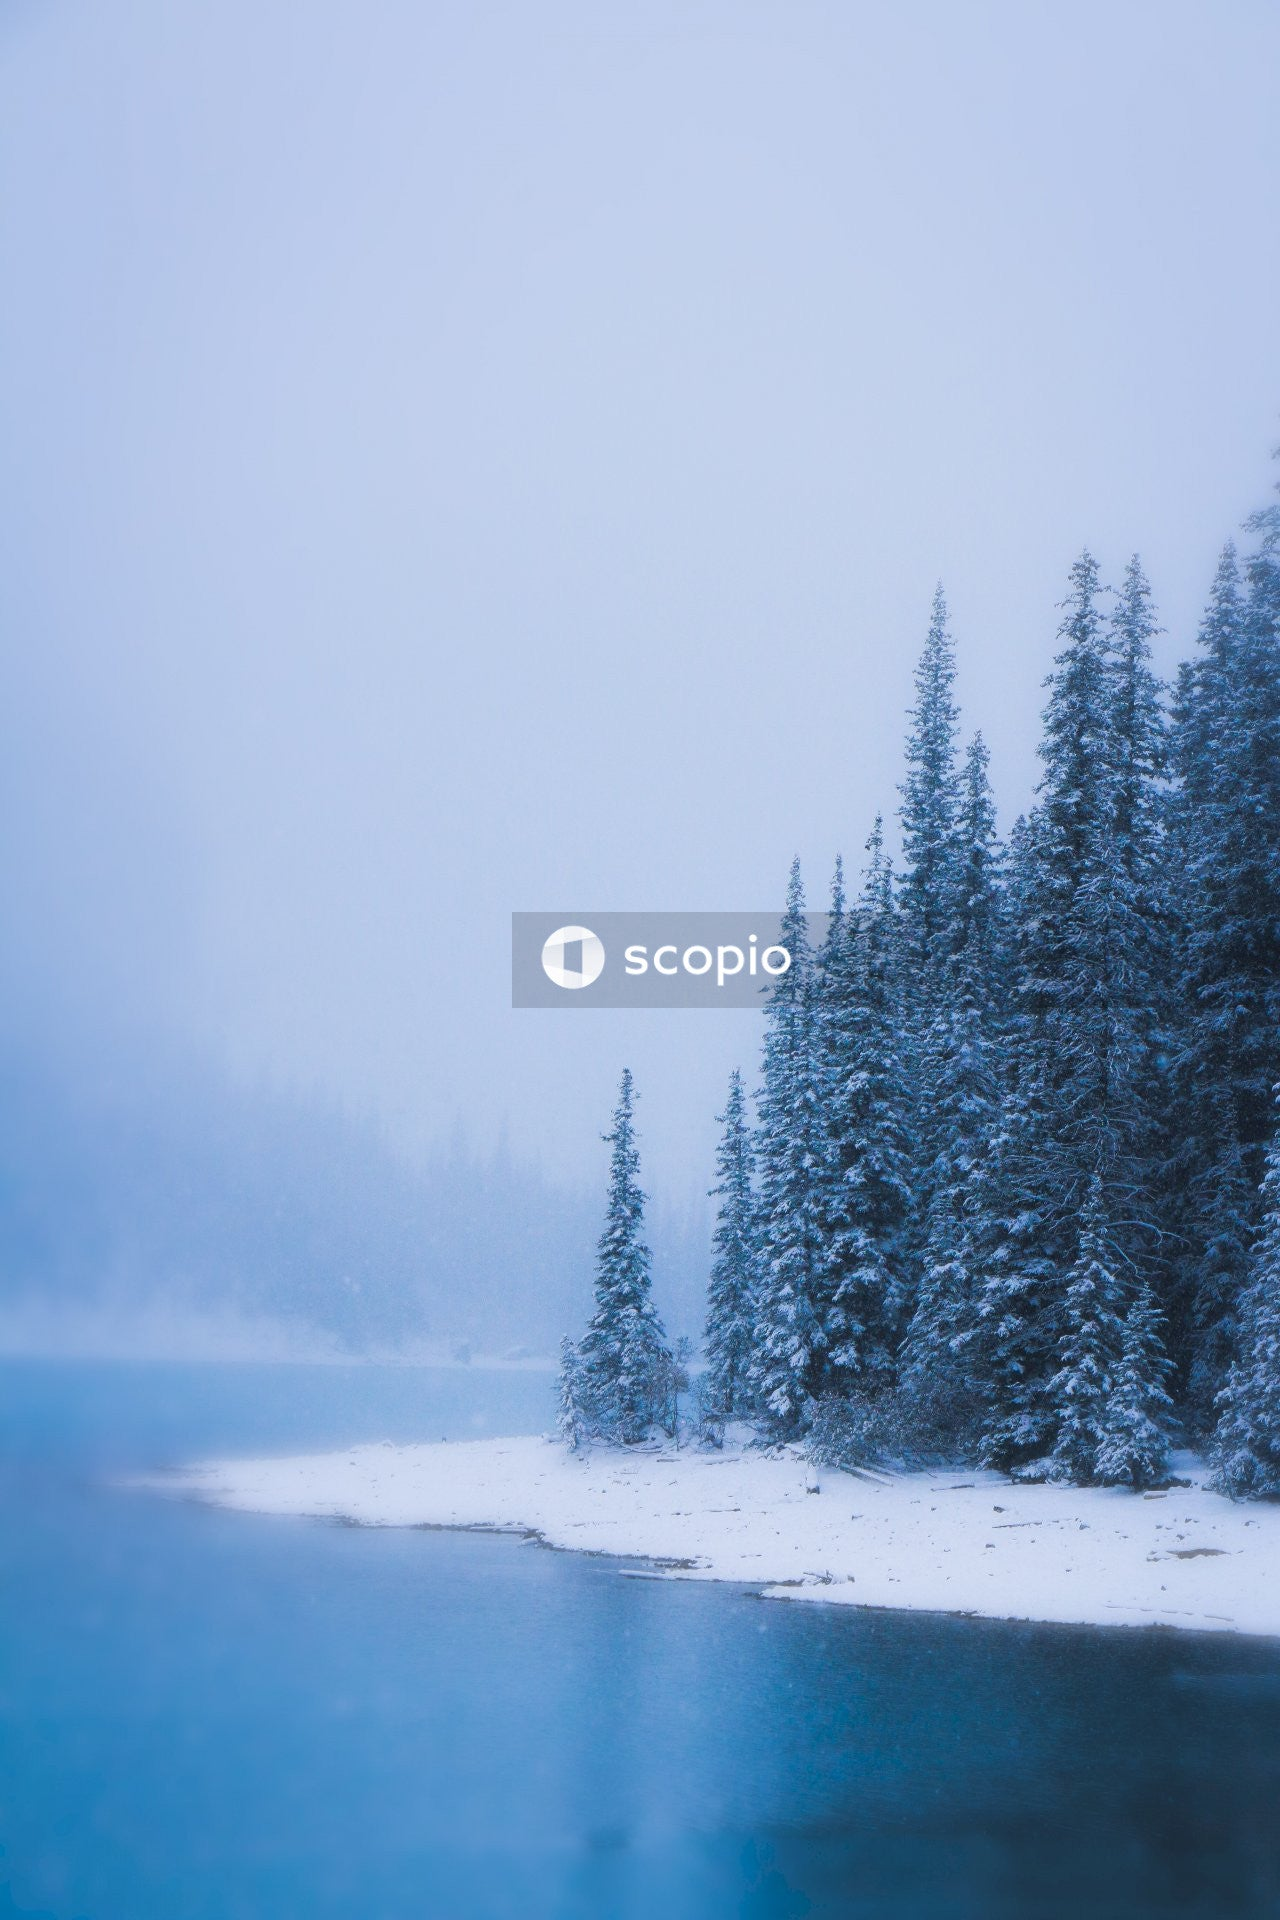 Green pine trees covered with snow near body of water